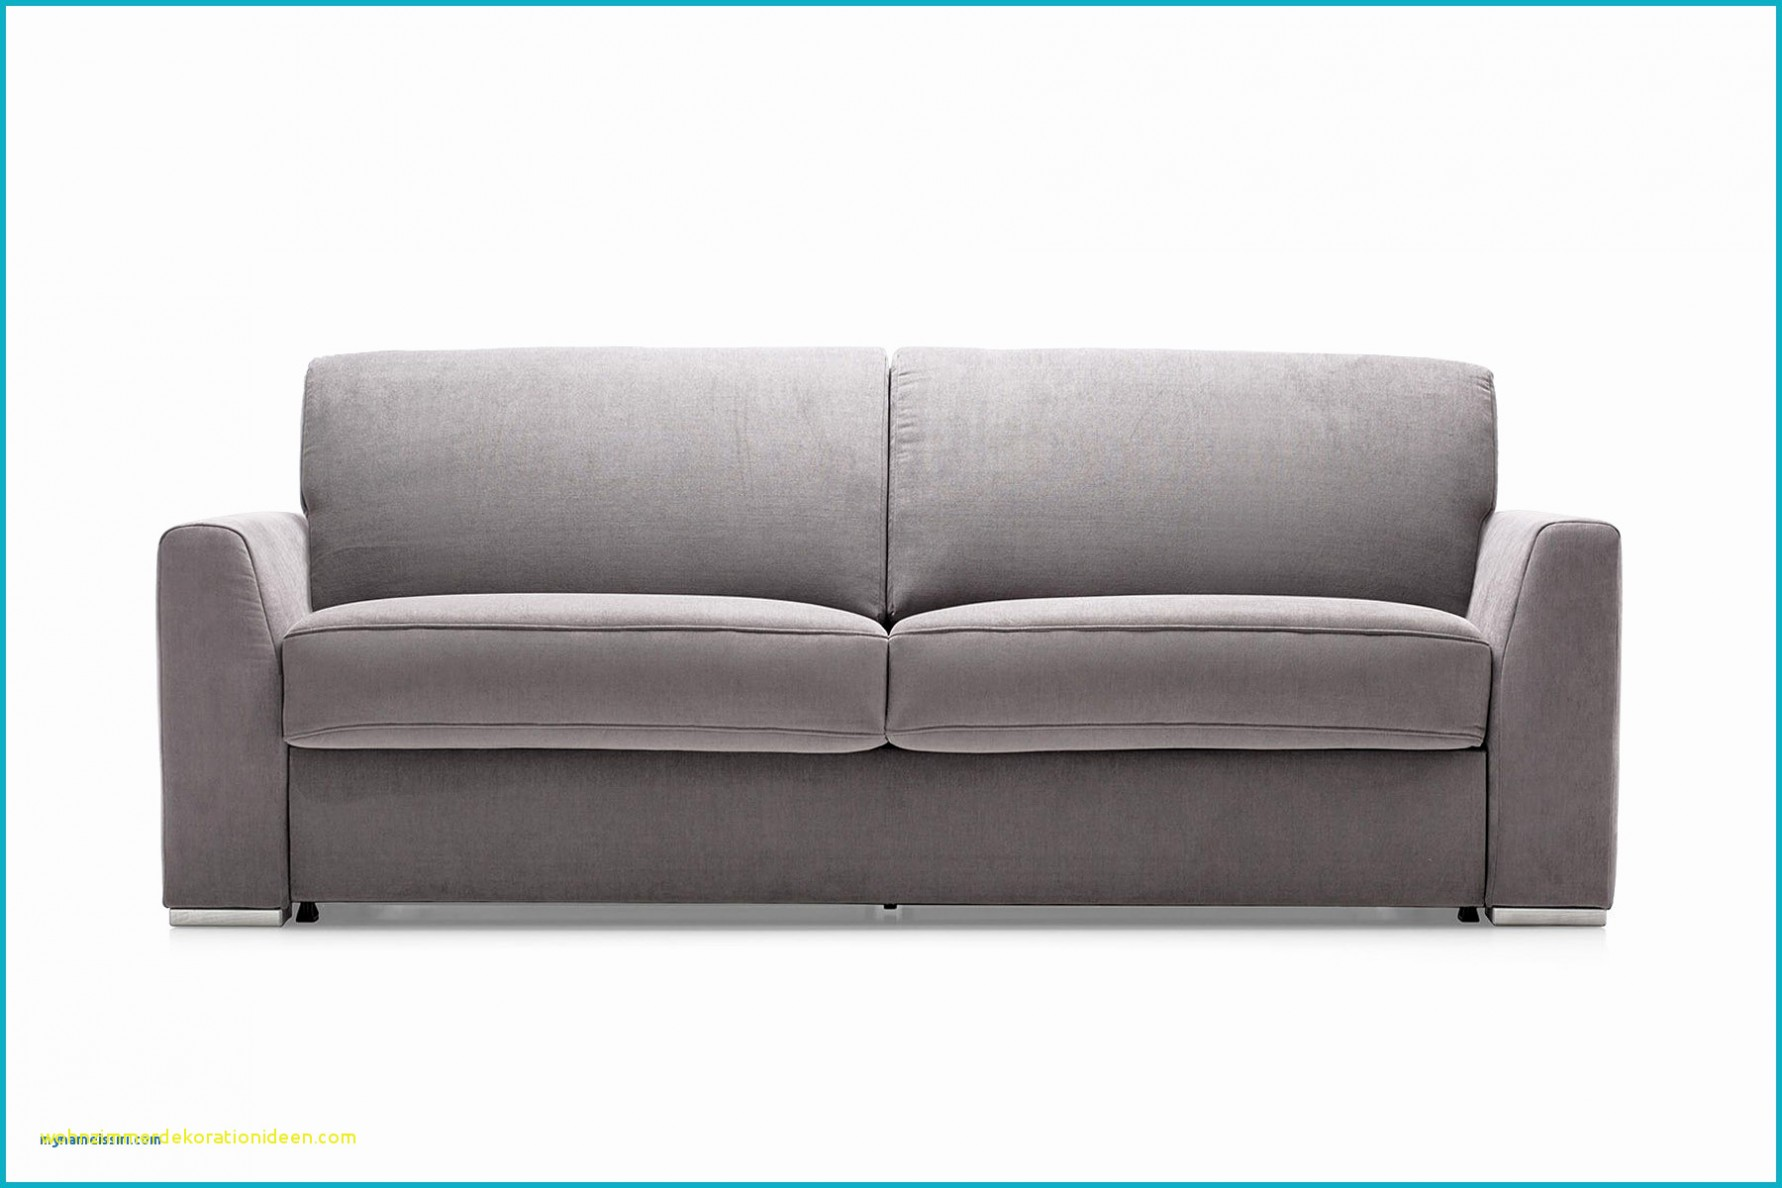 Big Sofa Federkern Best Sofa For Heavy Person New Big Sofa Ebay Best Big Sofa Otto